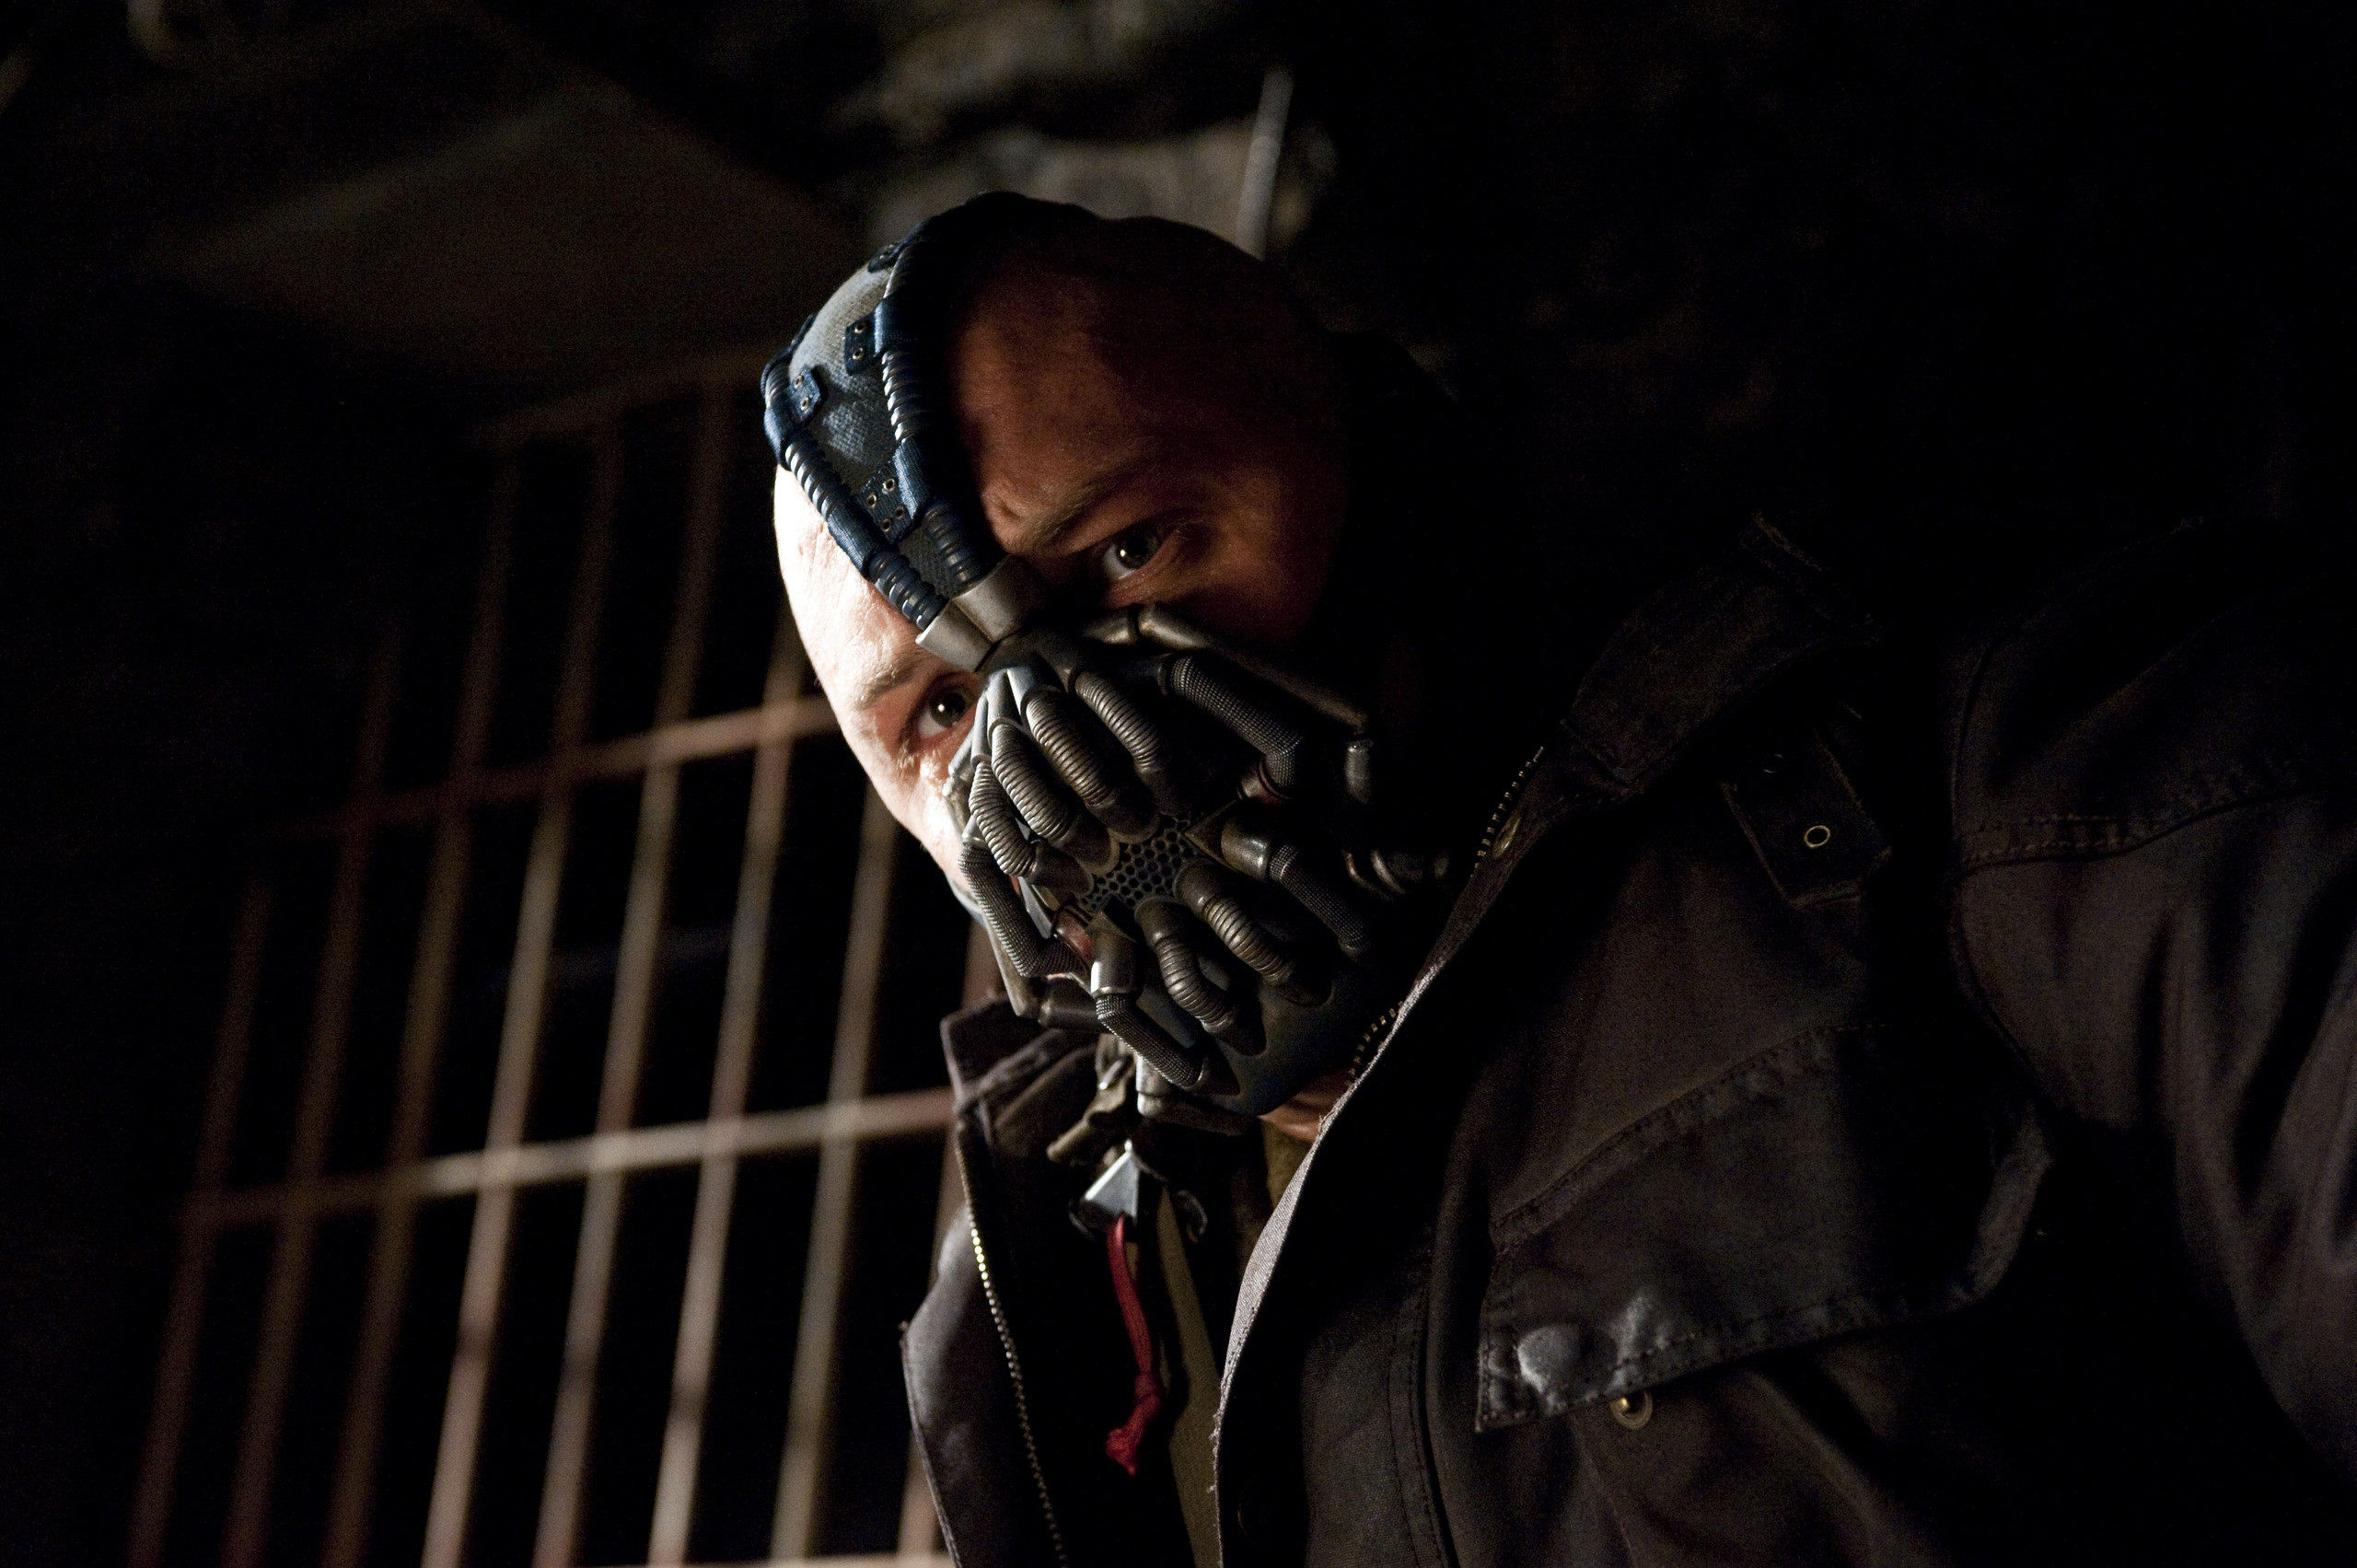 2560x1703 Bane images Tom Hardy as Bane in 'The Dark Knight Rises' (HQ) HD wallpaper  and background photos